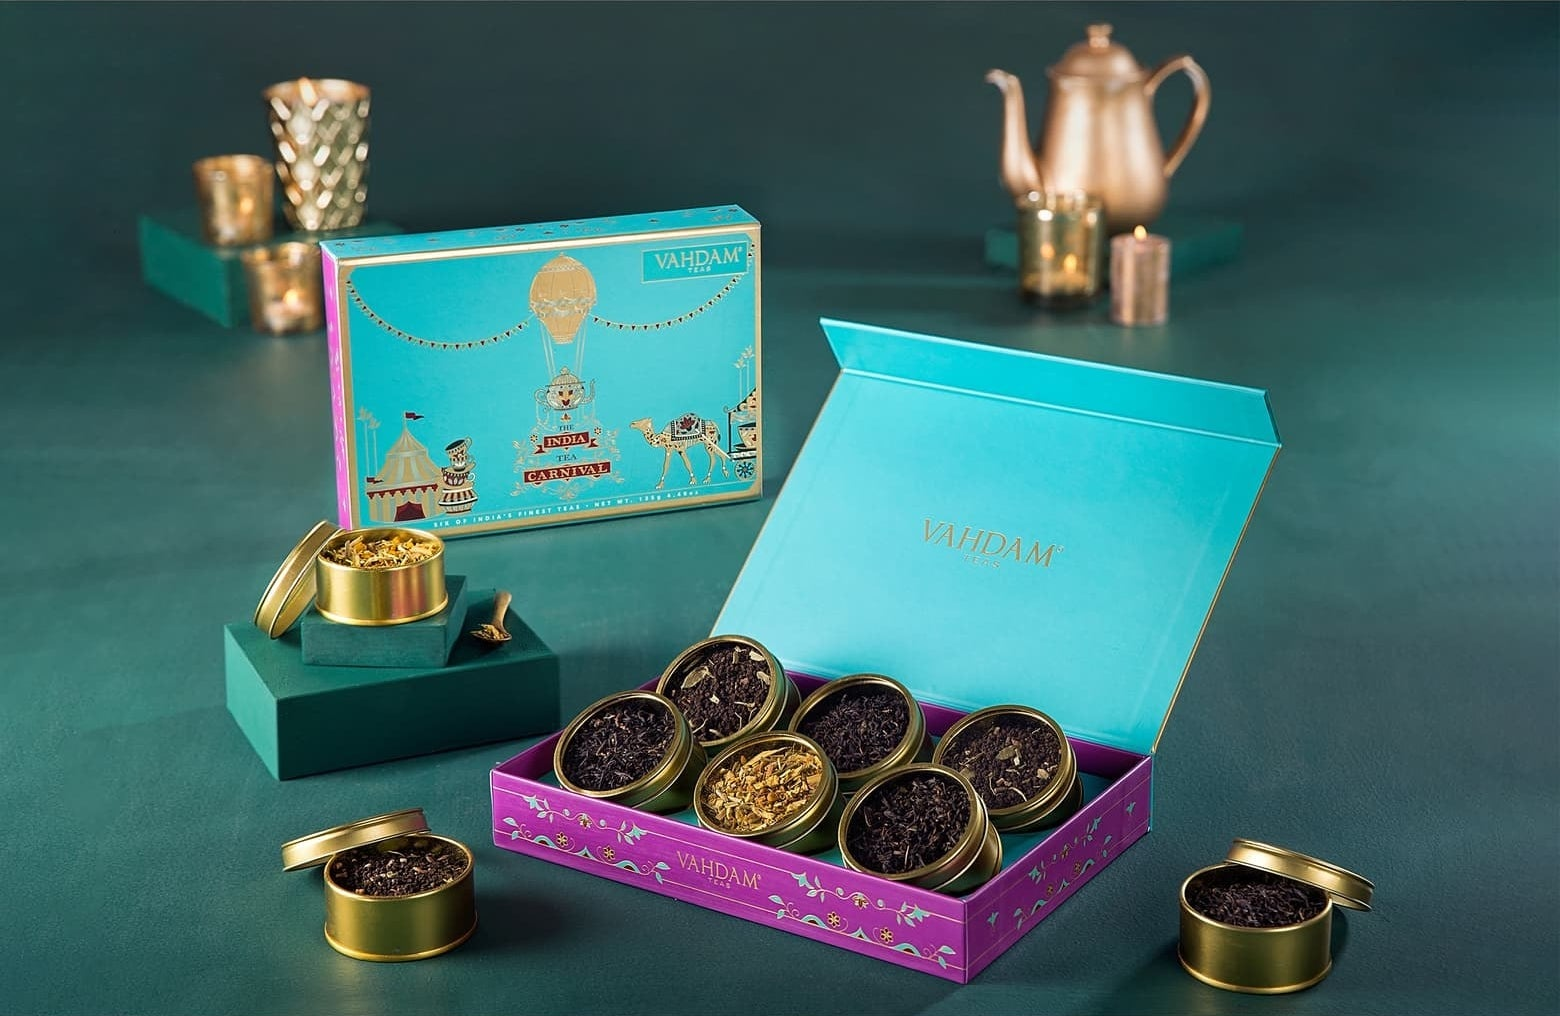 The six teas in small gold circular cans displayed in a box